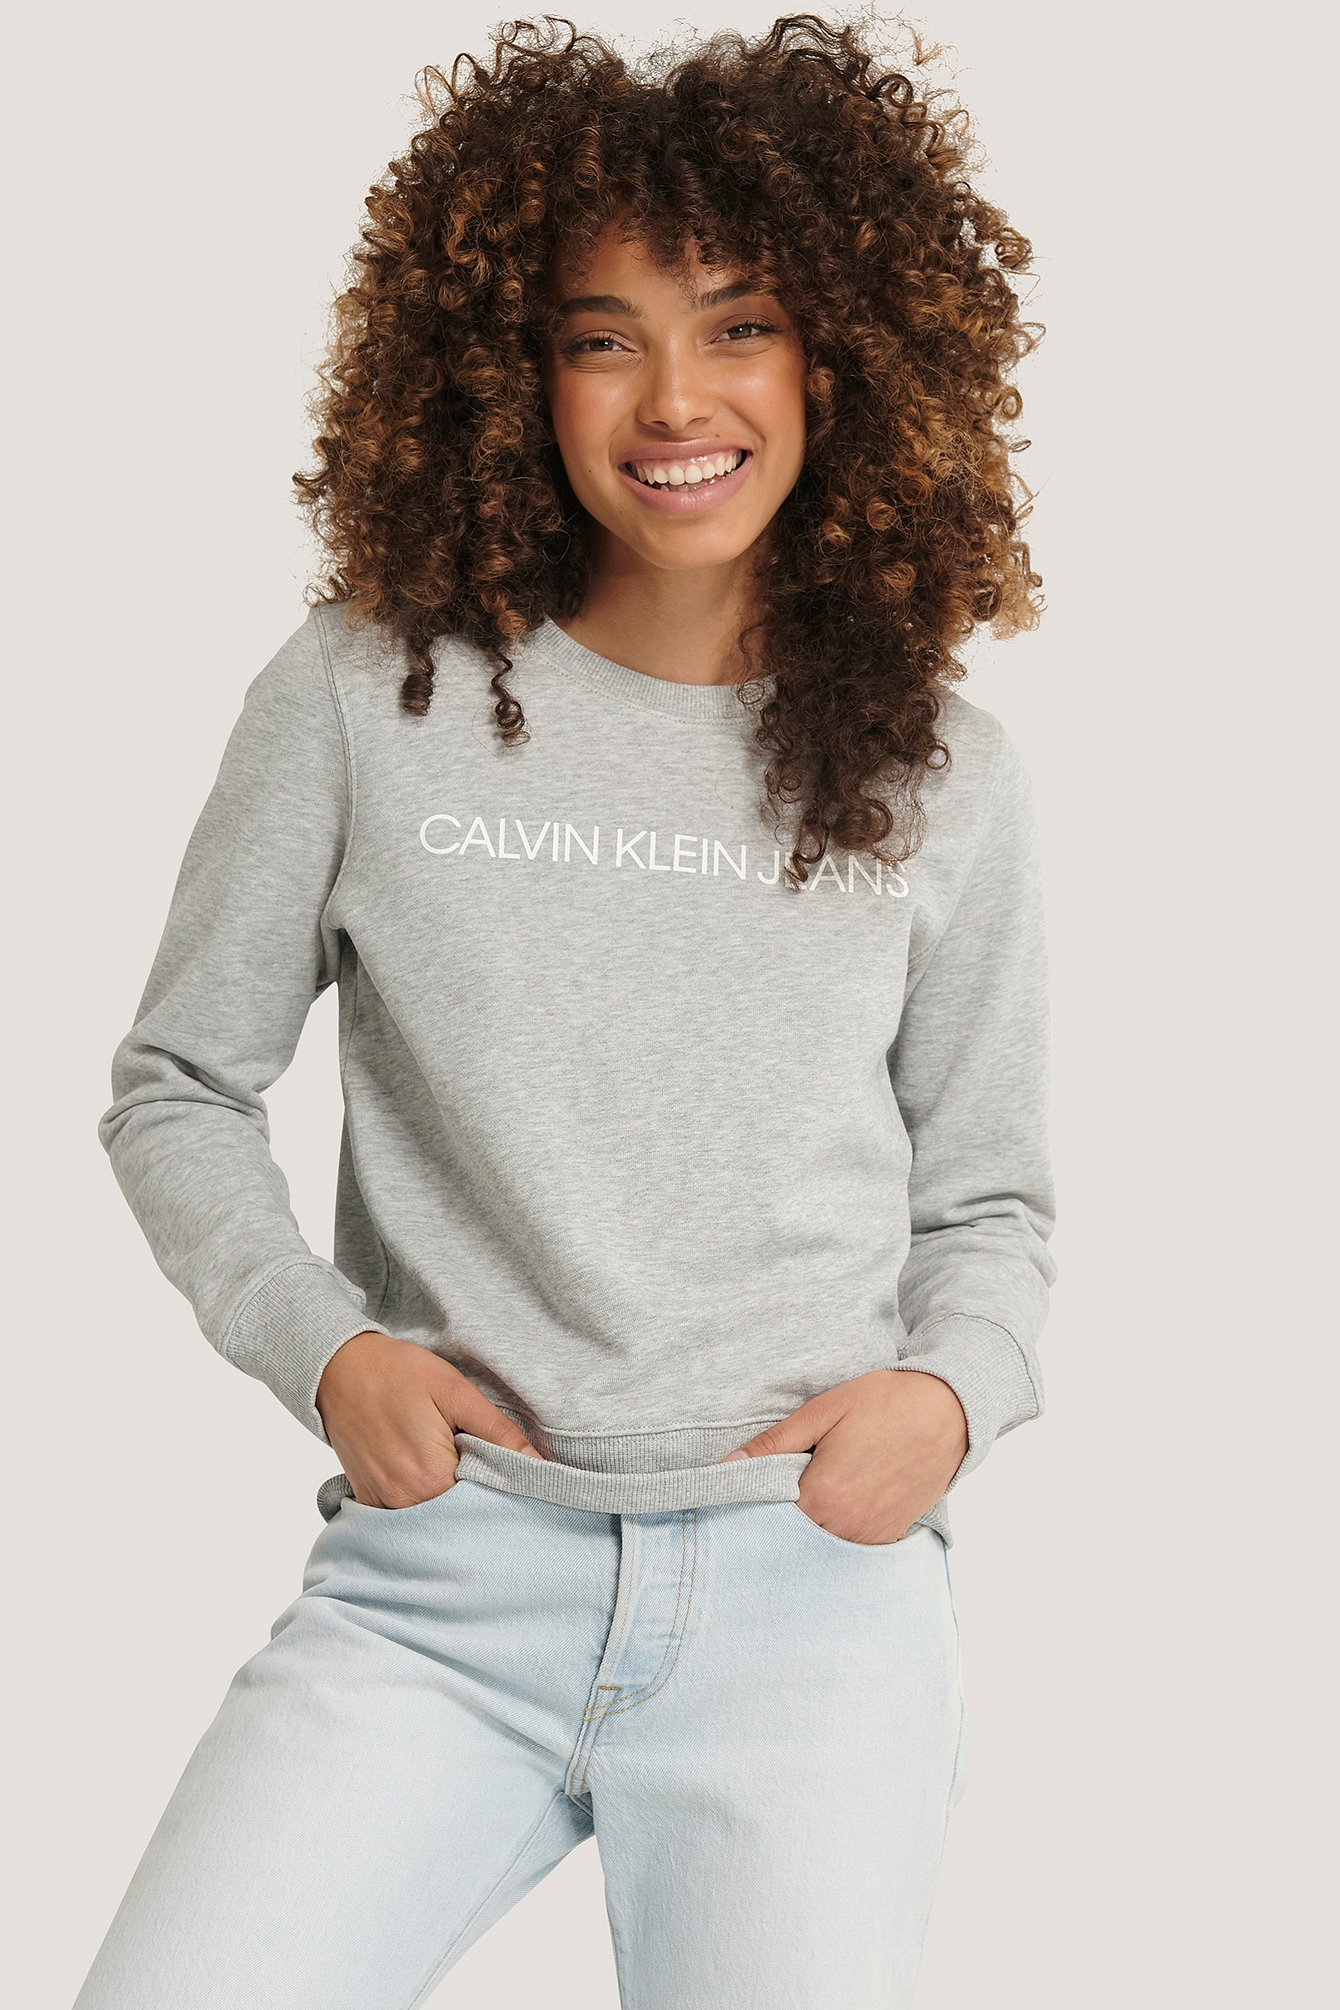 calvin klein -  Institutional Core Logo Sweater - Grey